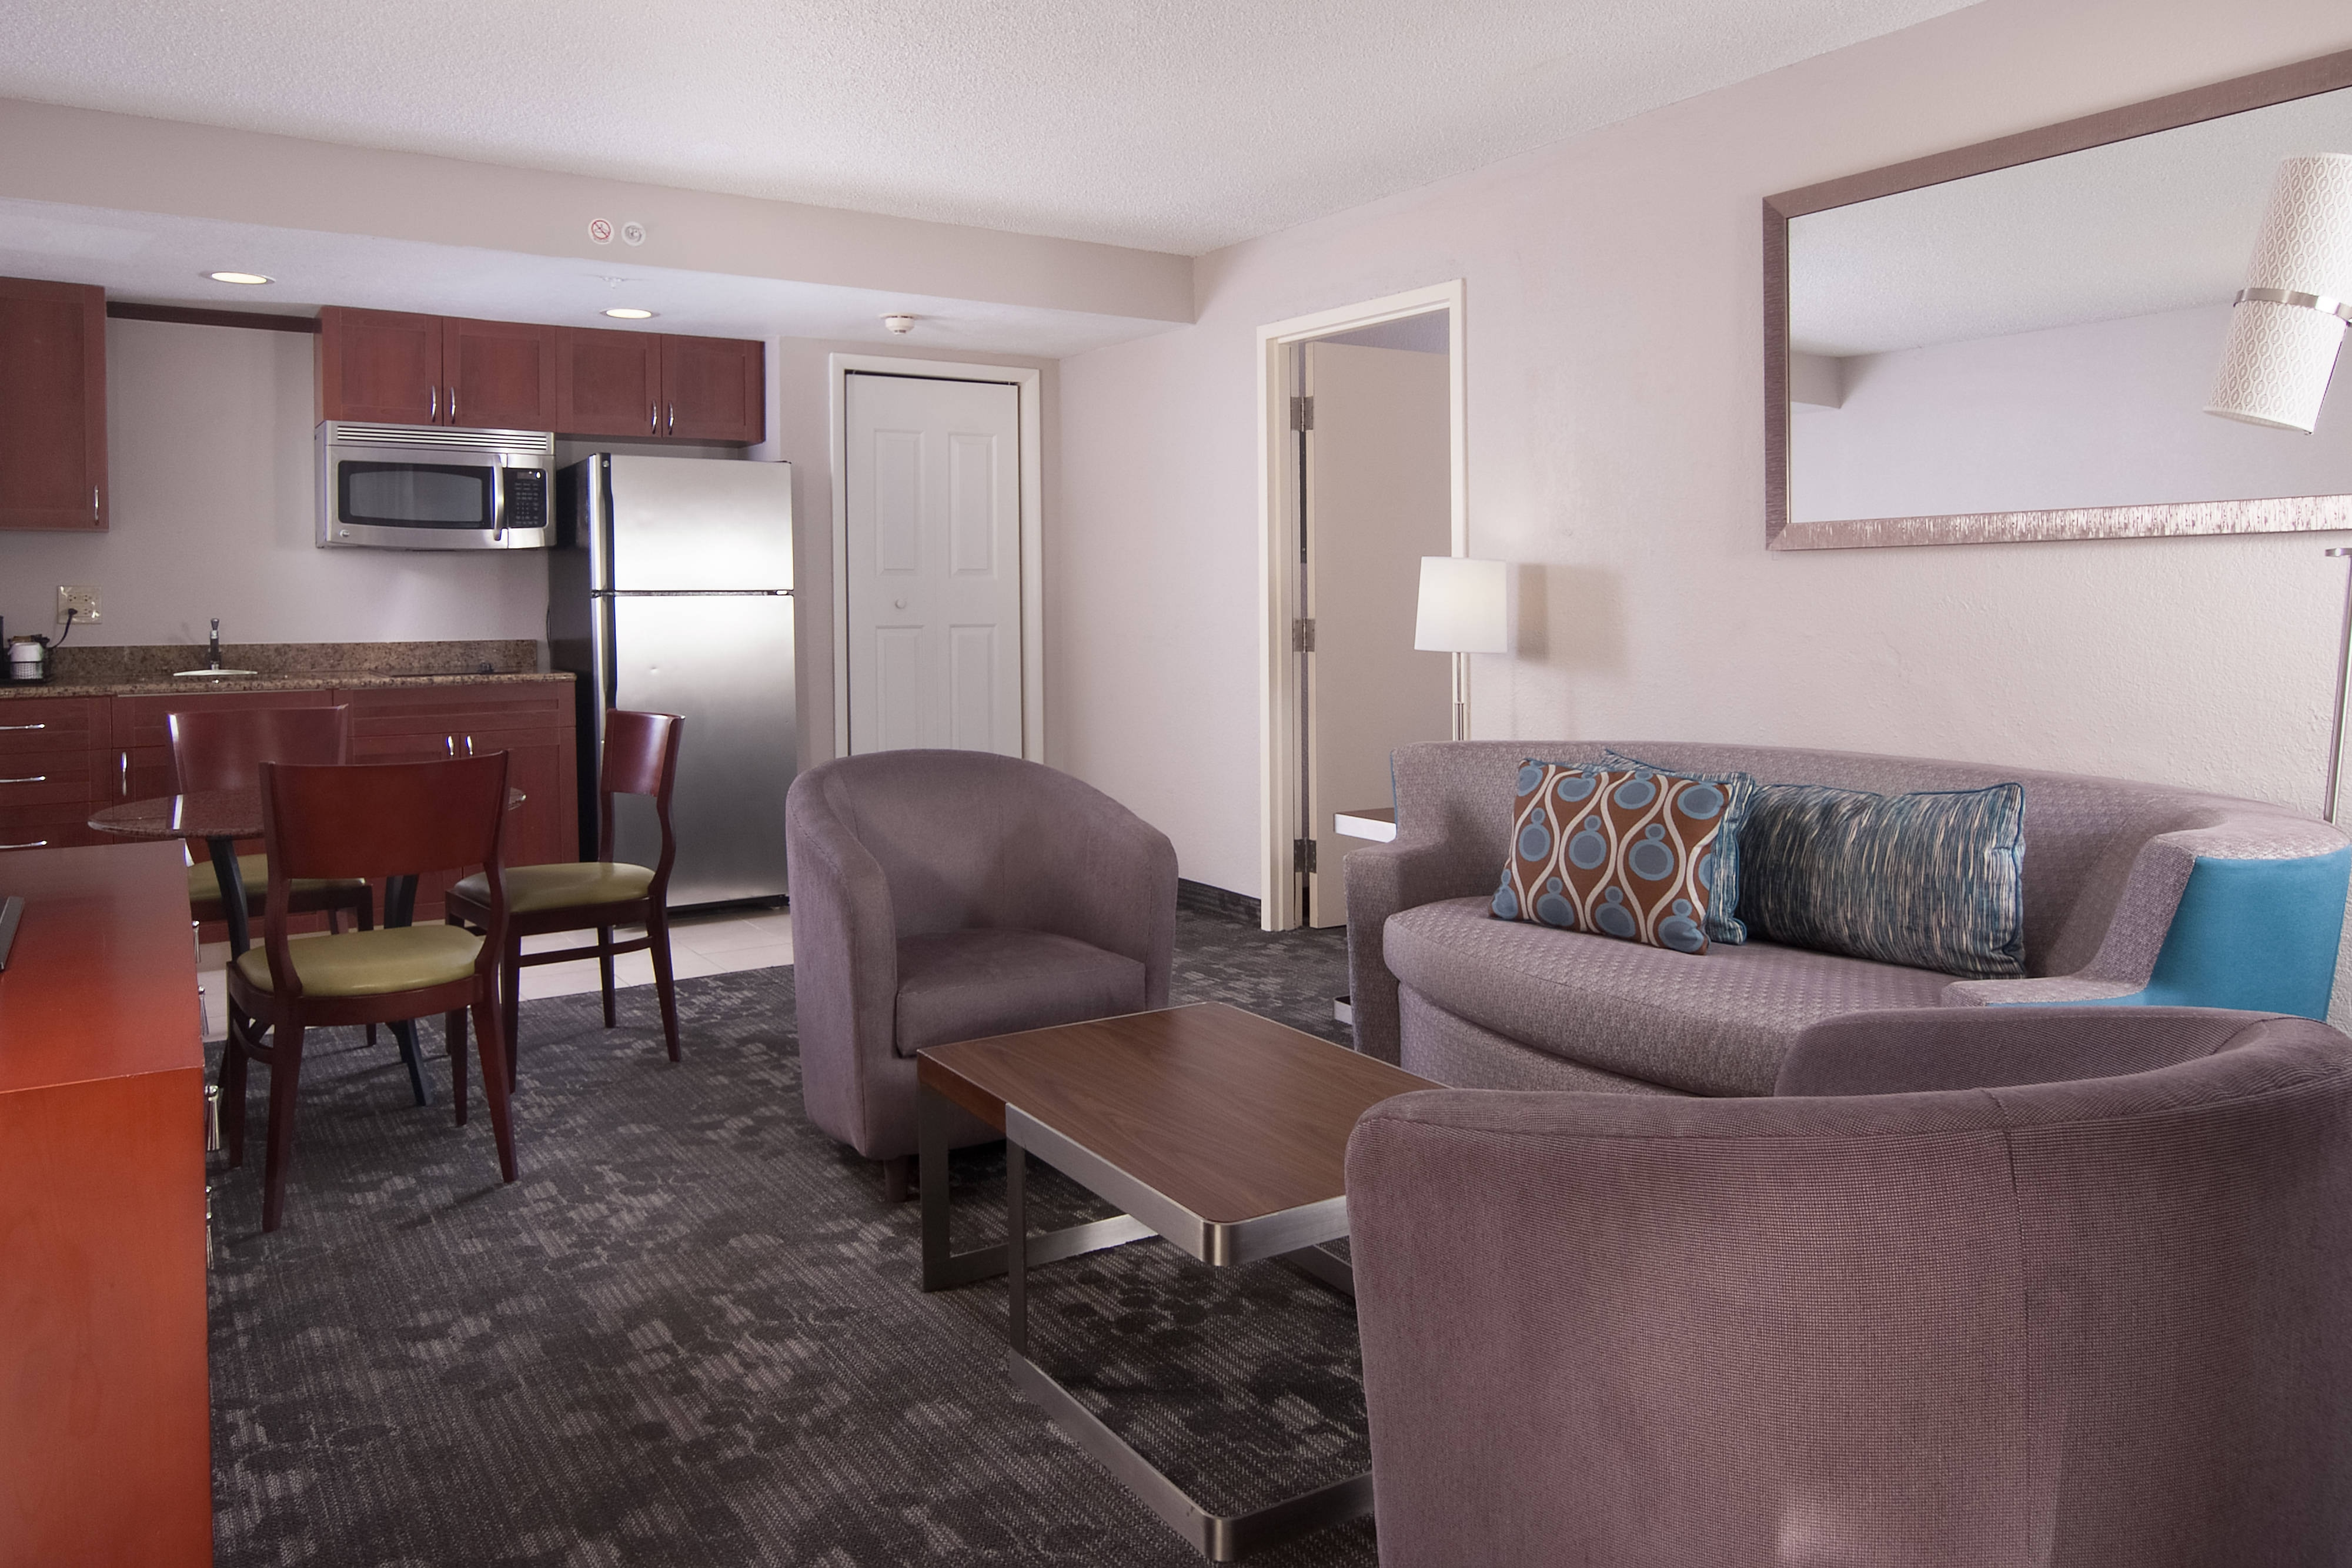 Junior Suite Kitchen and Living Area